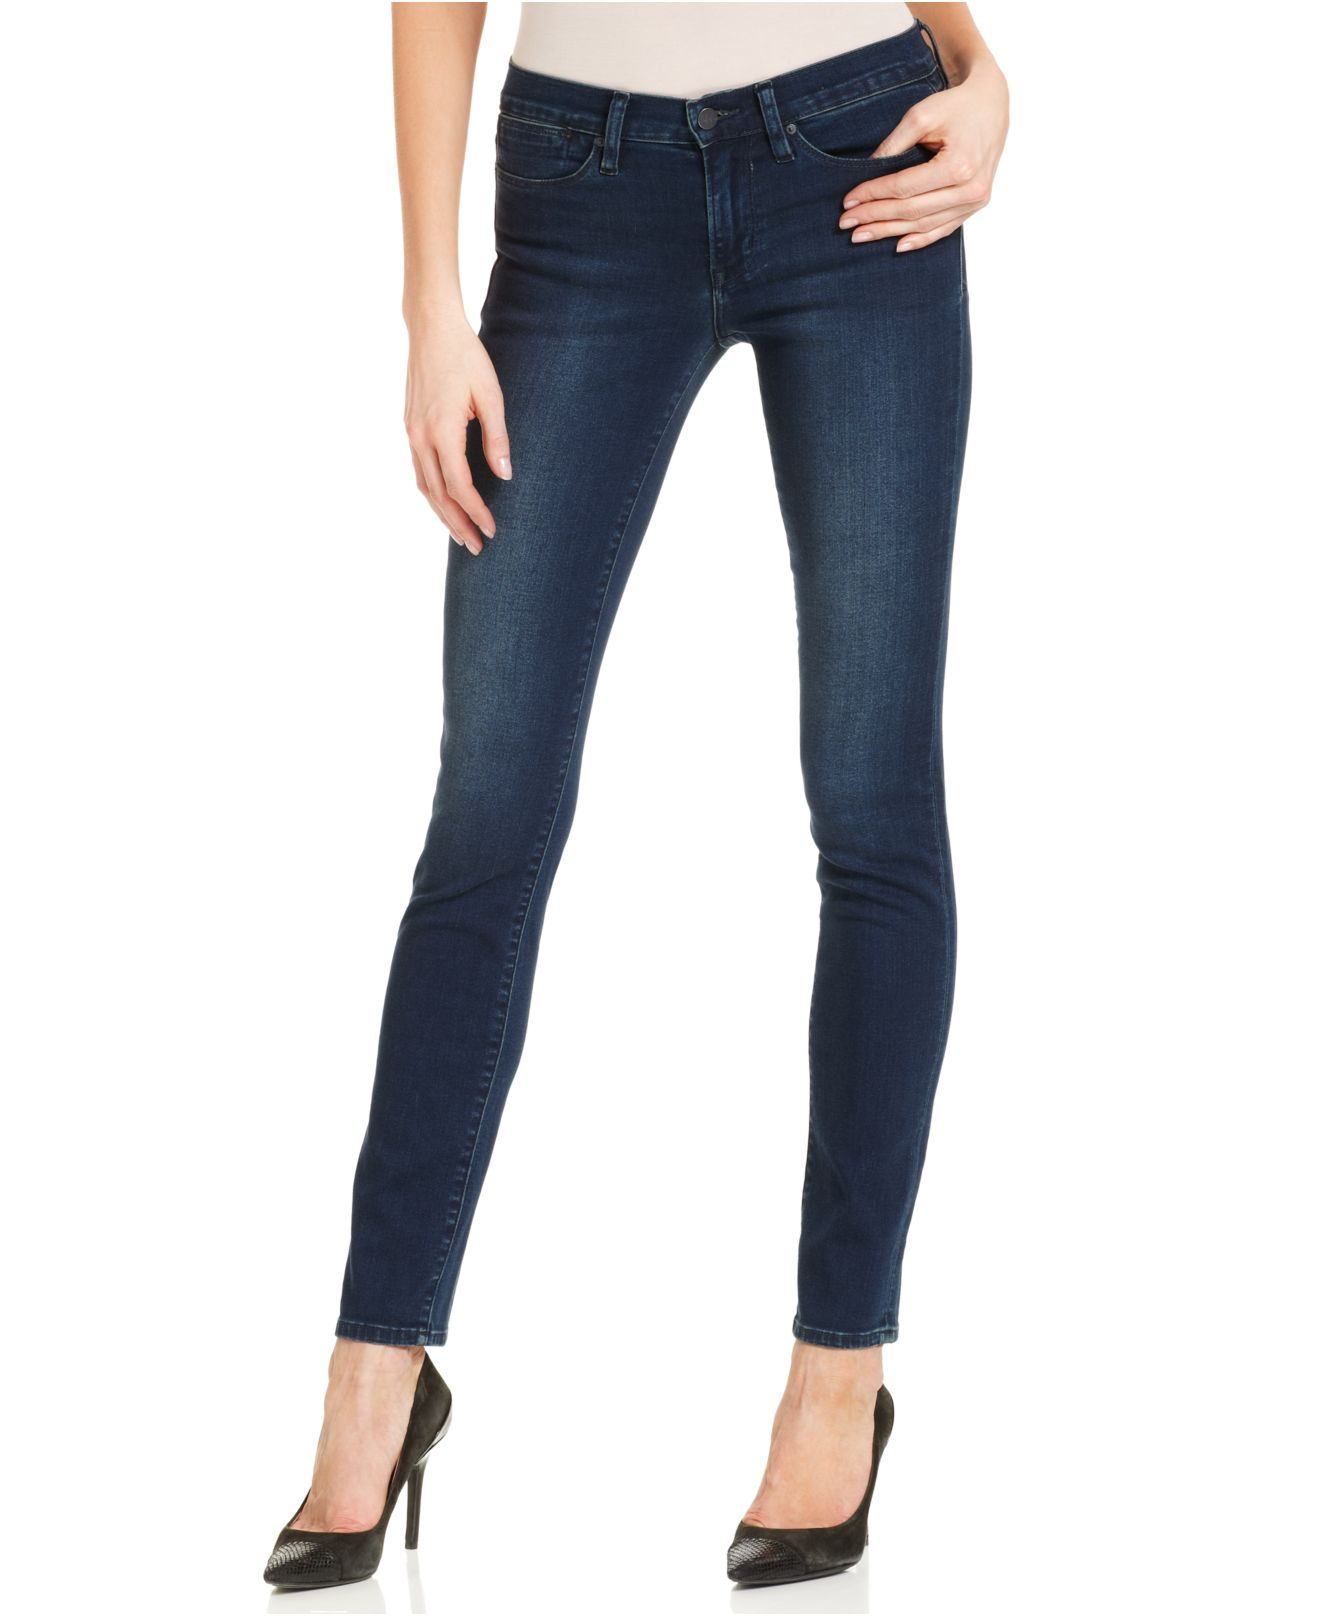 Calvin klein jeans skinny jeans green tomatoes wash